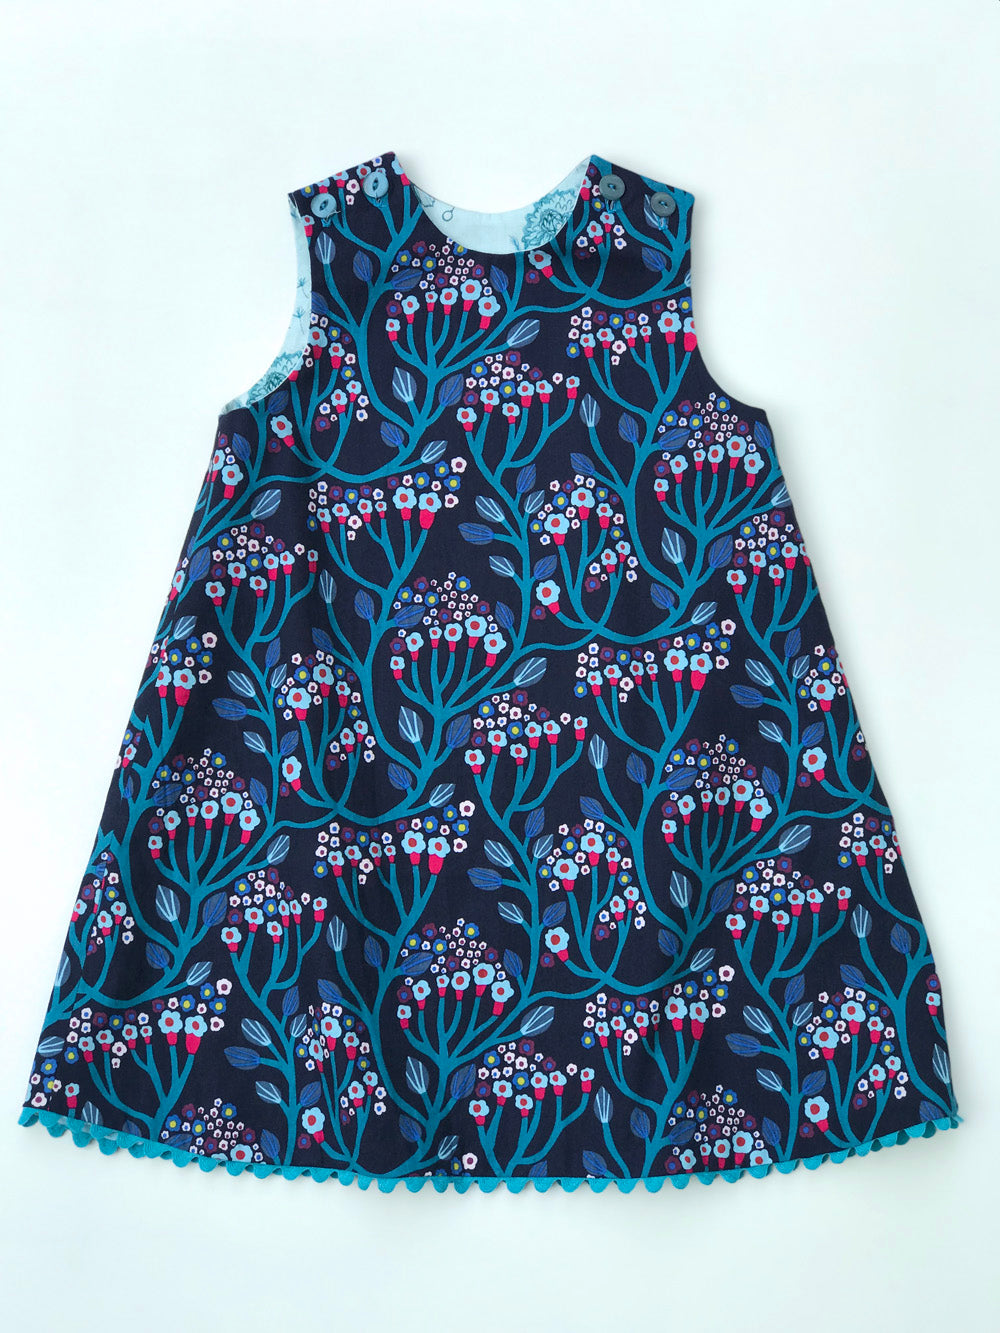 reversible pattern block dress in aqua and navy - little girl Pearl